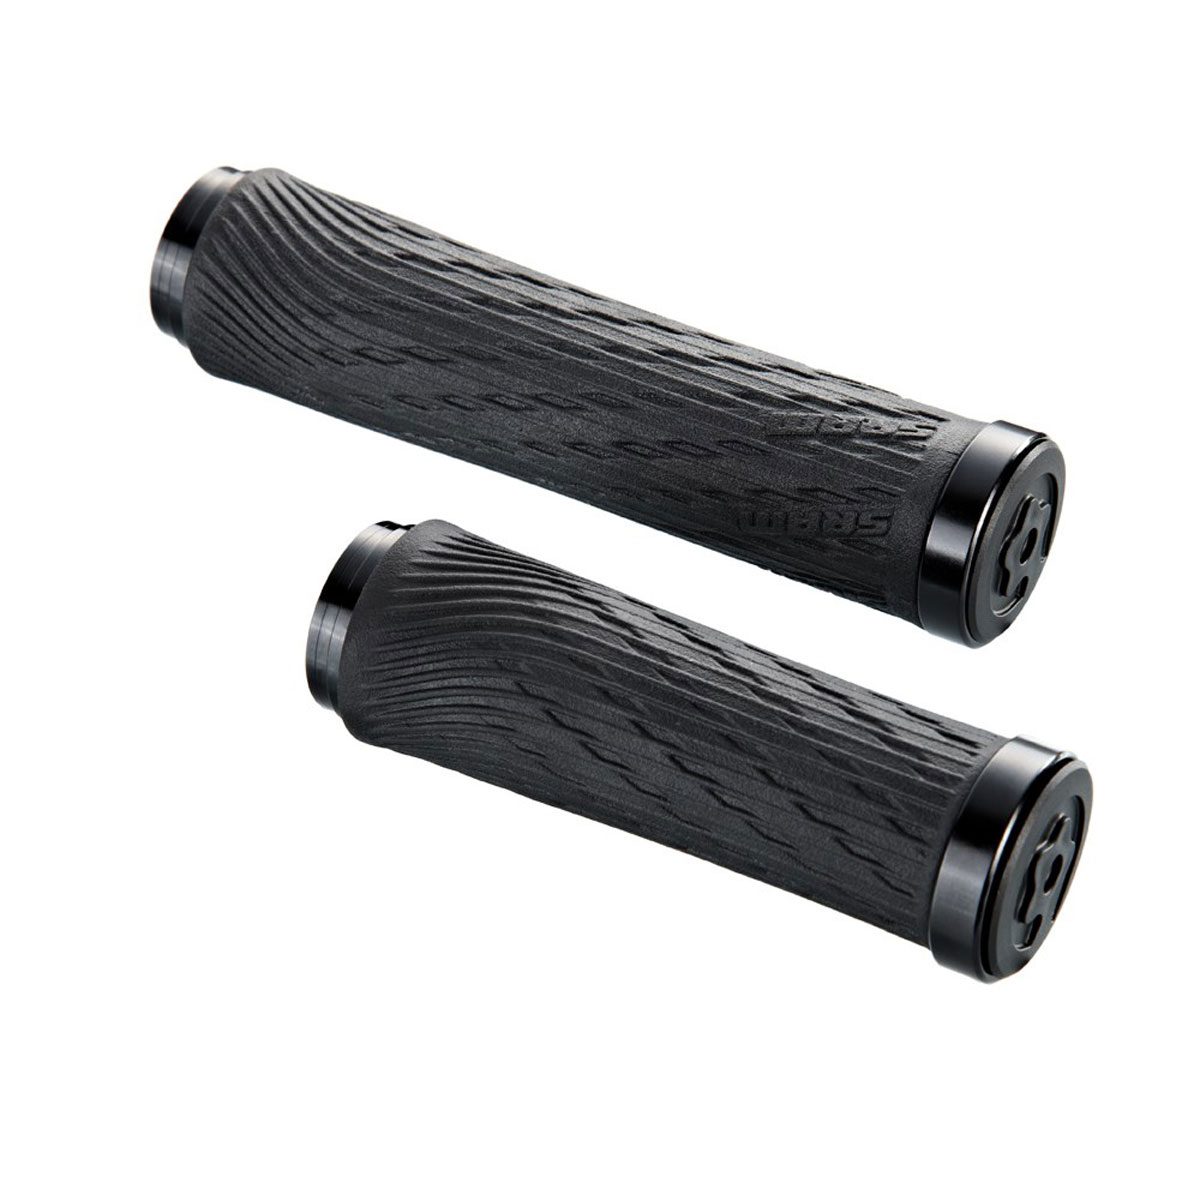 Locking Grips for Grip Shift